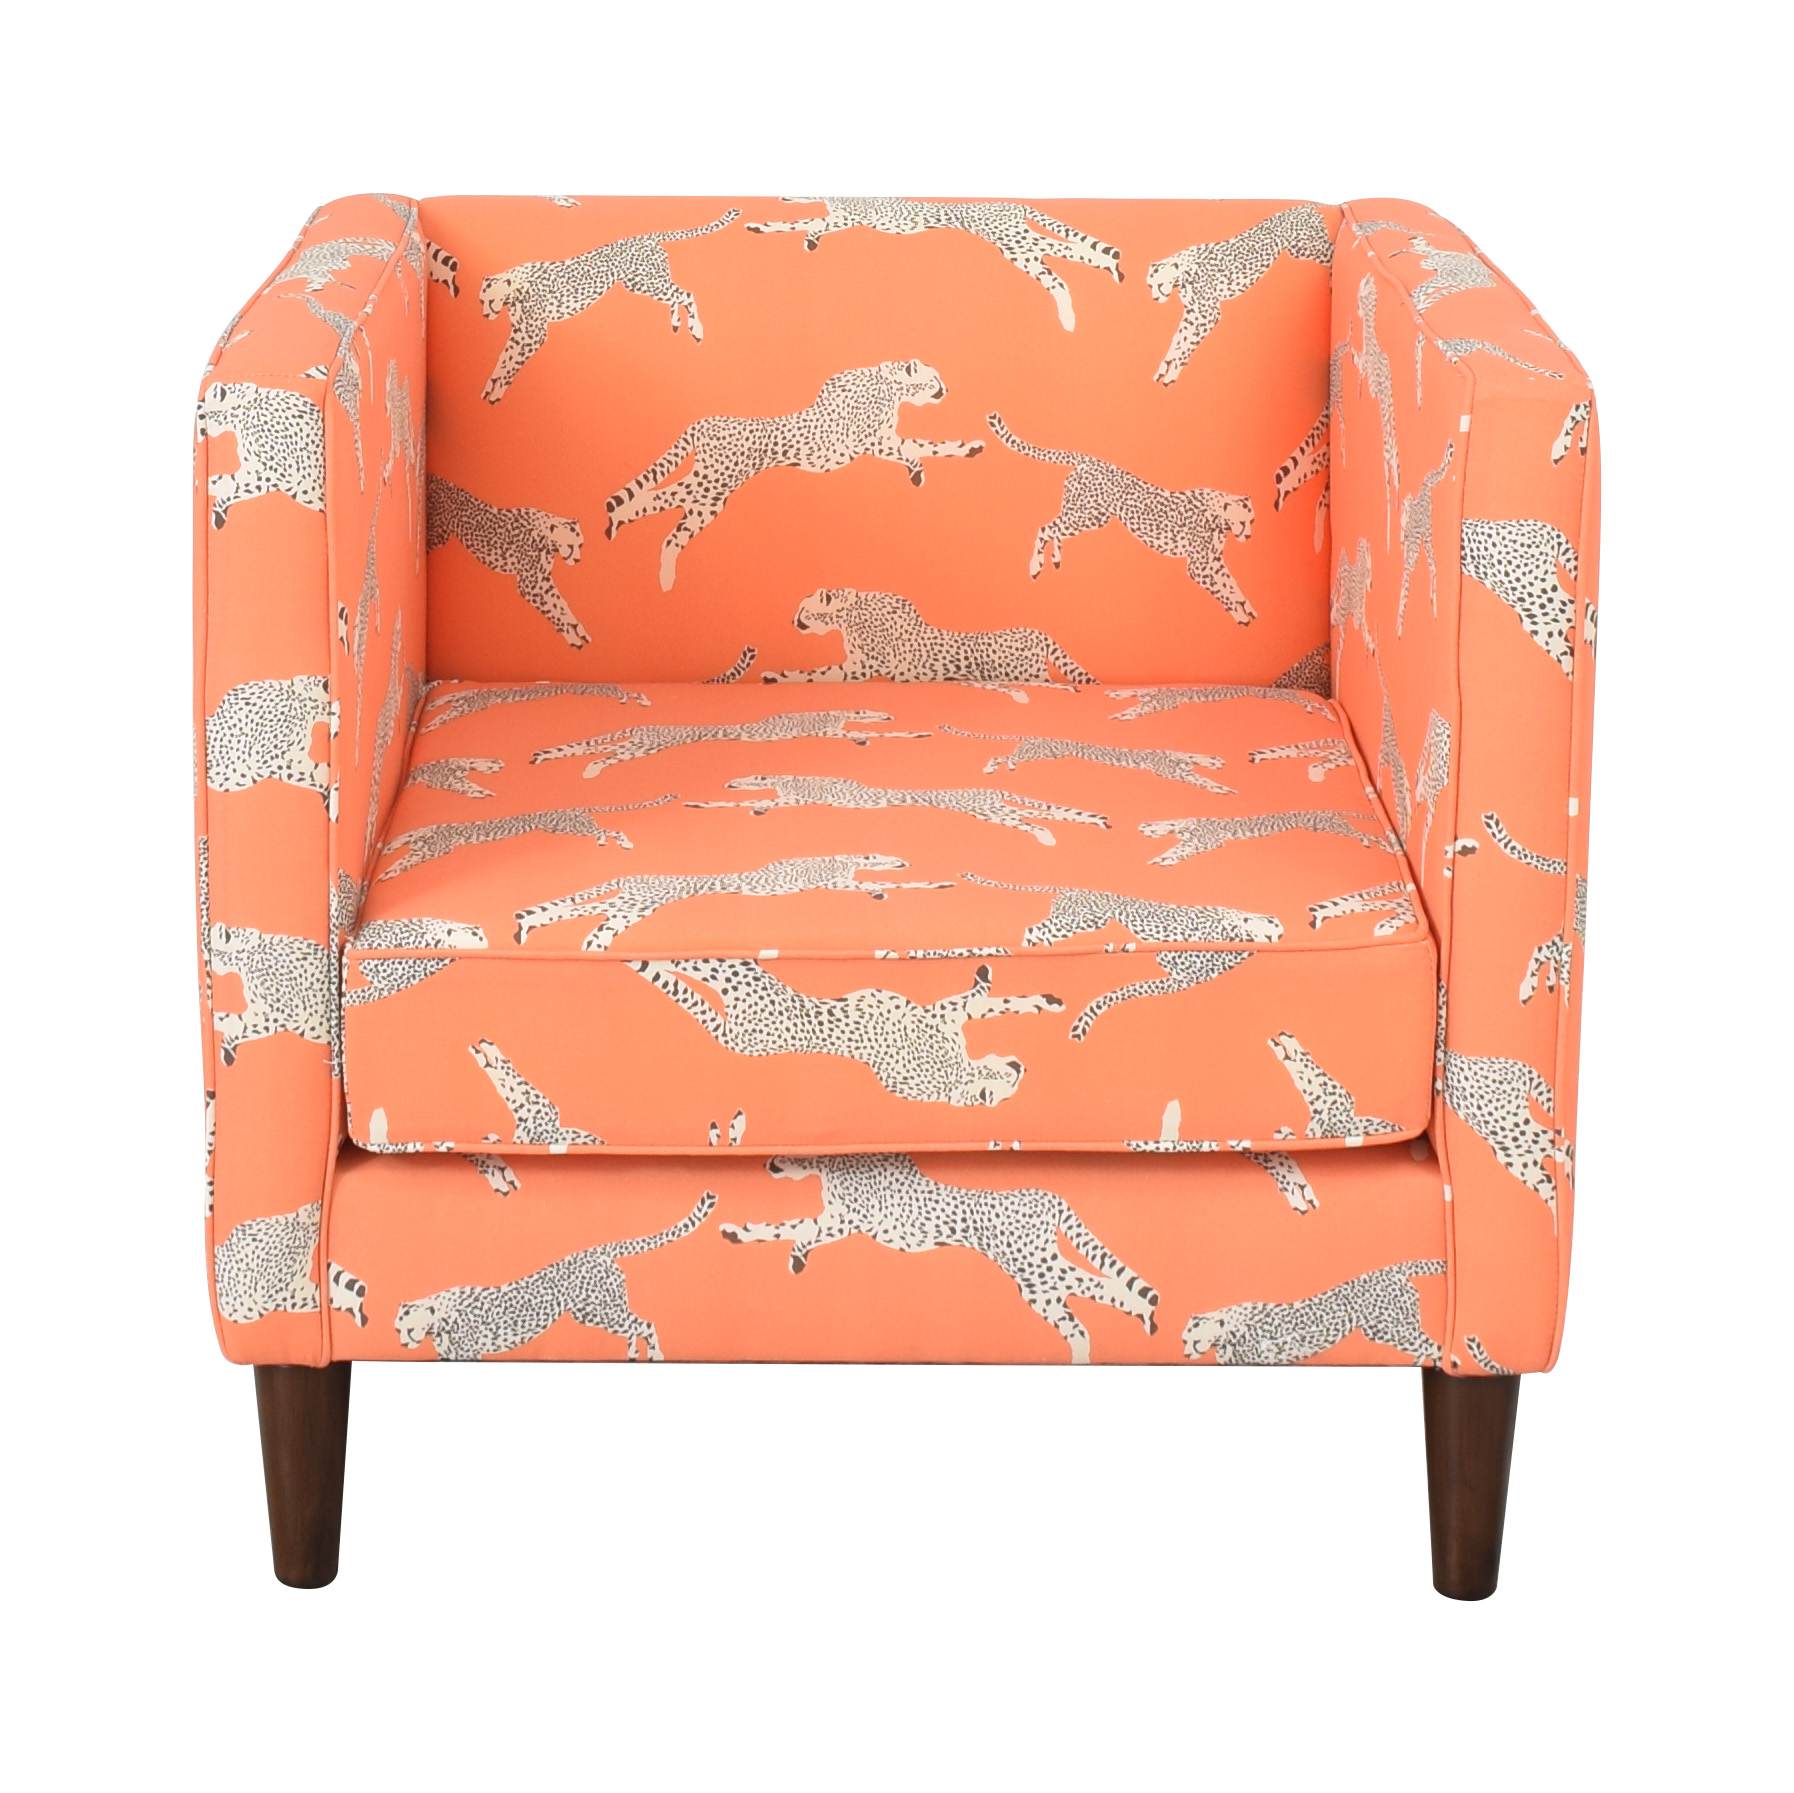 The Inside The Inside Tuxedo Chair in Coral Cheetah by Scalamandre ma